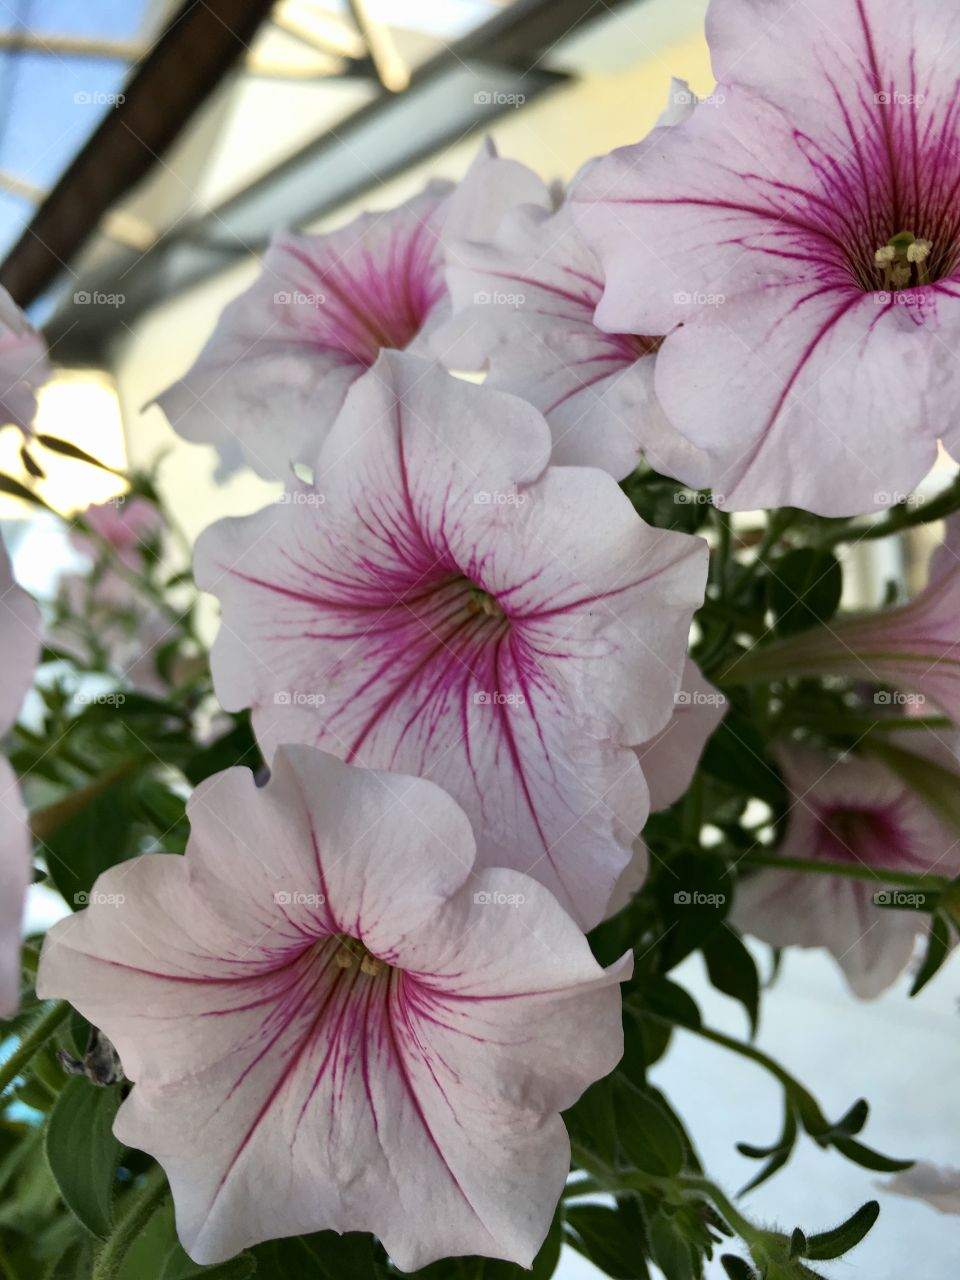 Beautiful white and pink flowers blooming